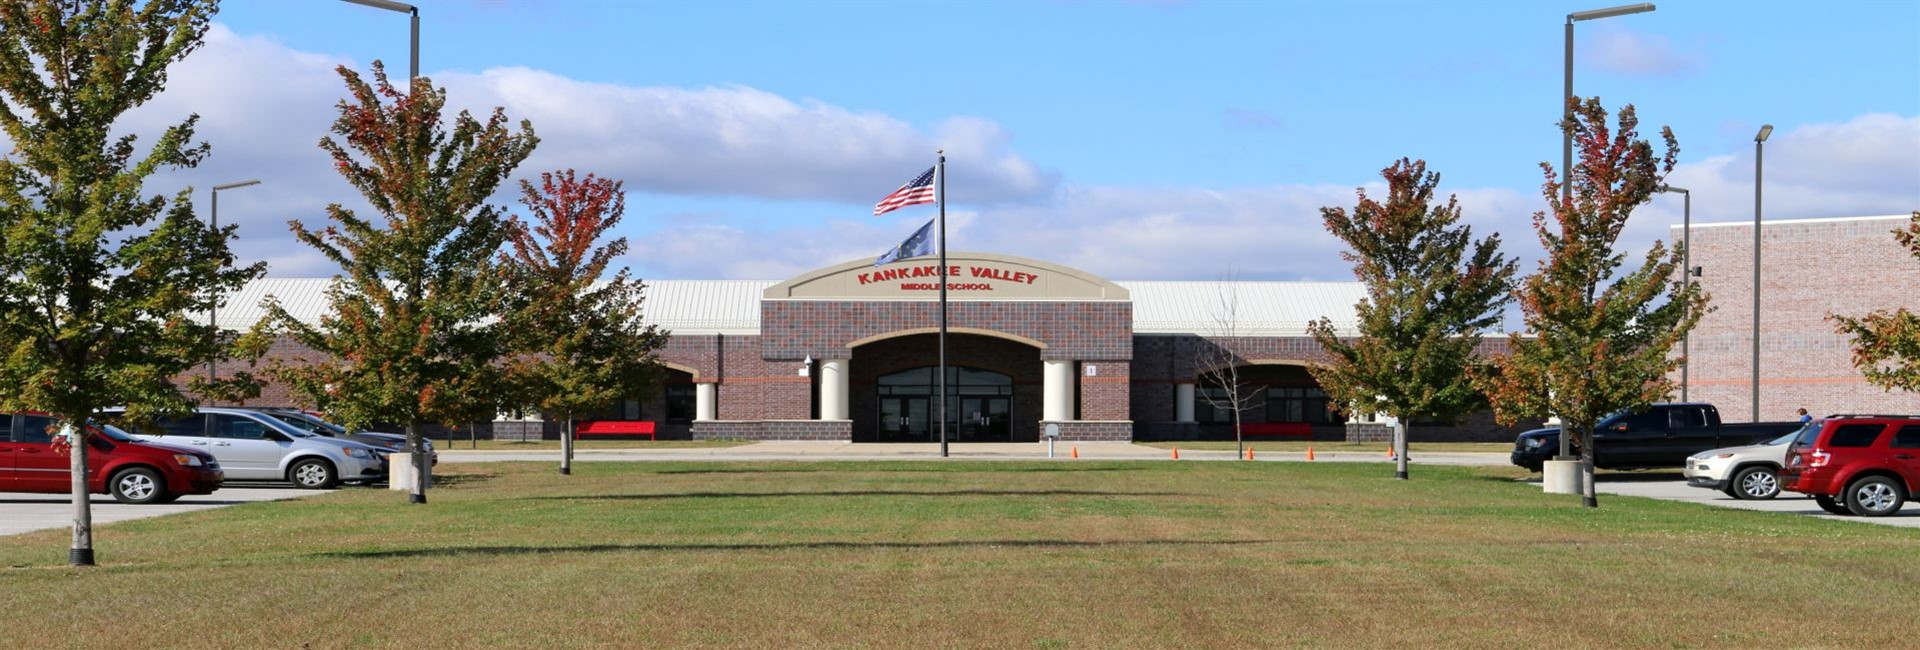 Kankakee Valley Middle School